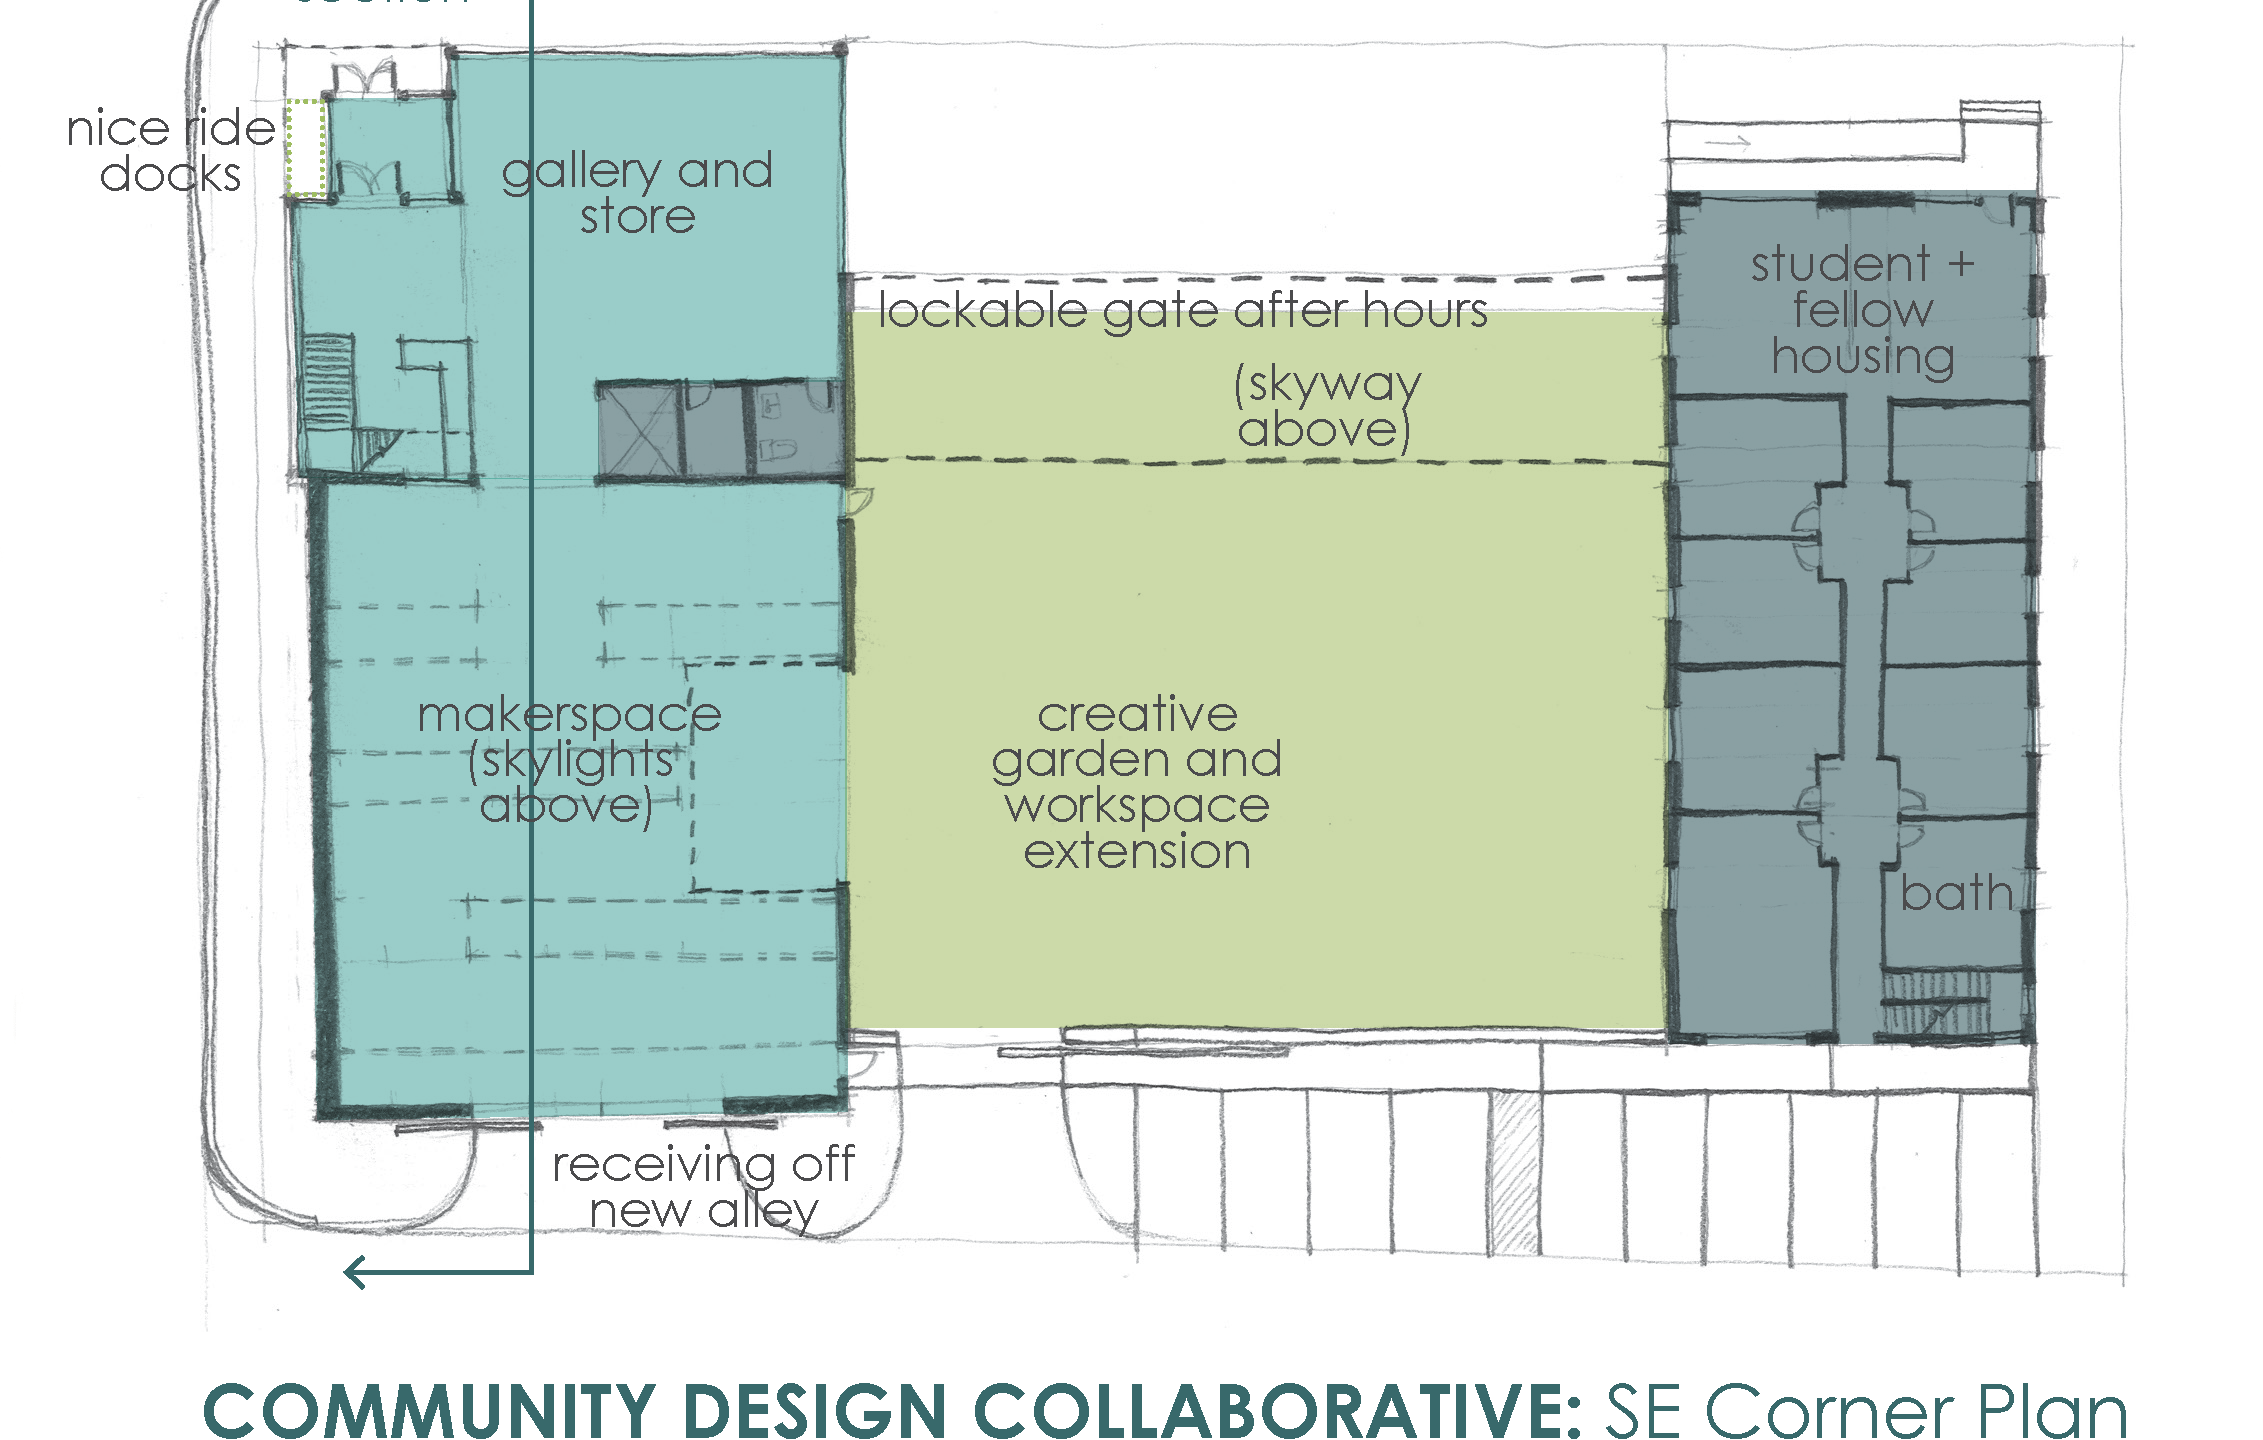 Community Design Collaborative